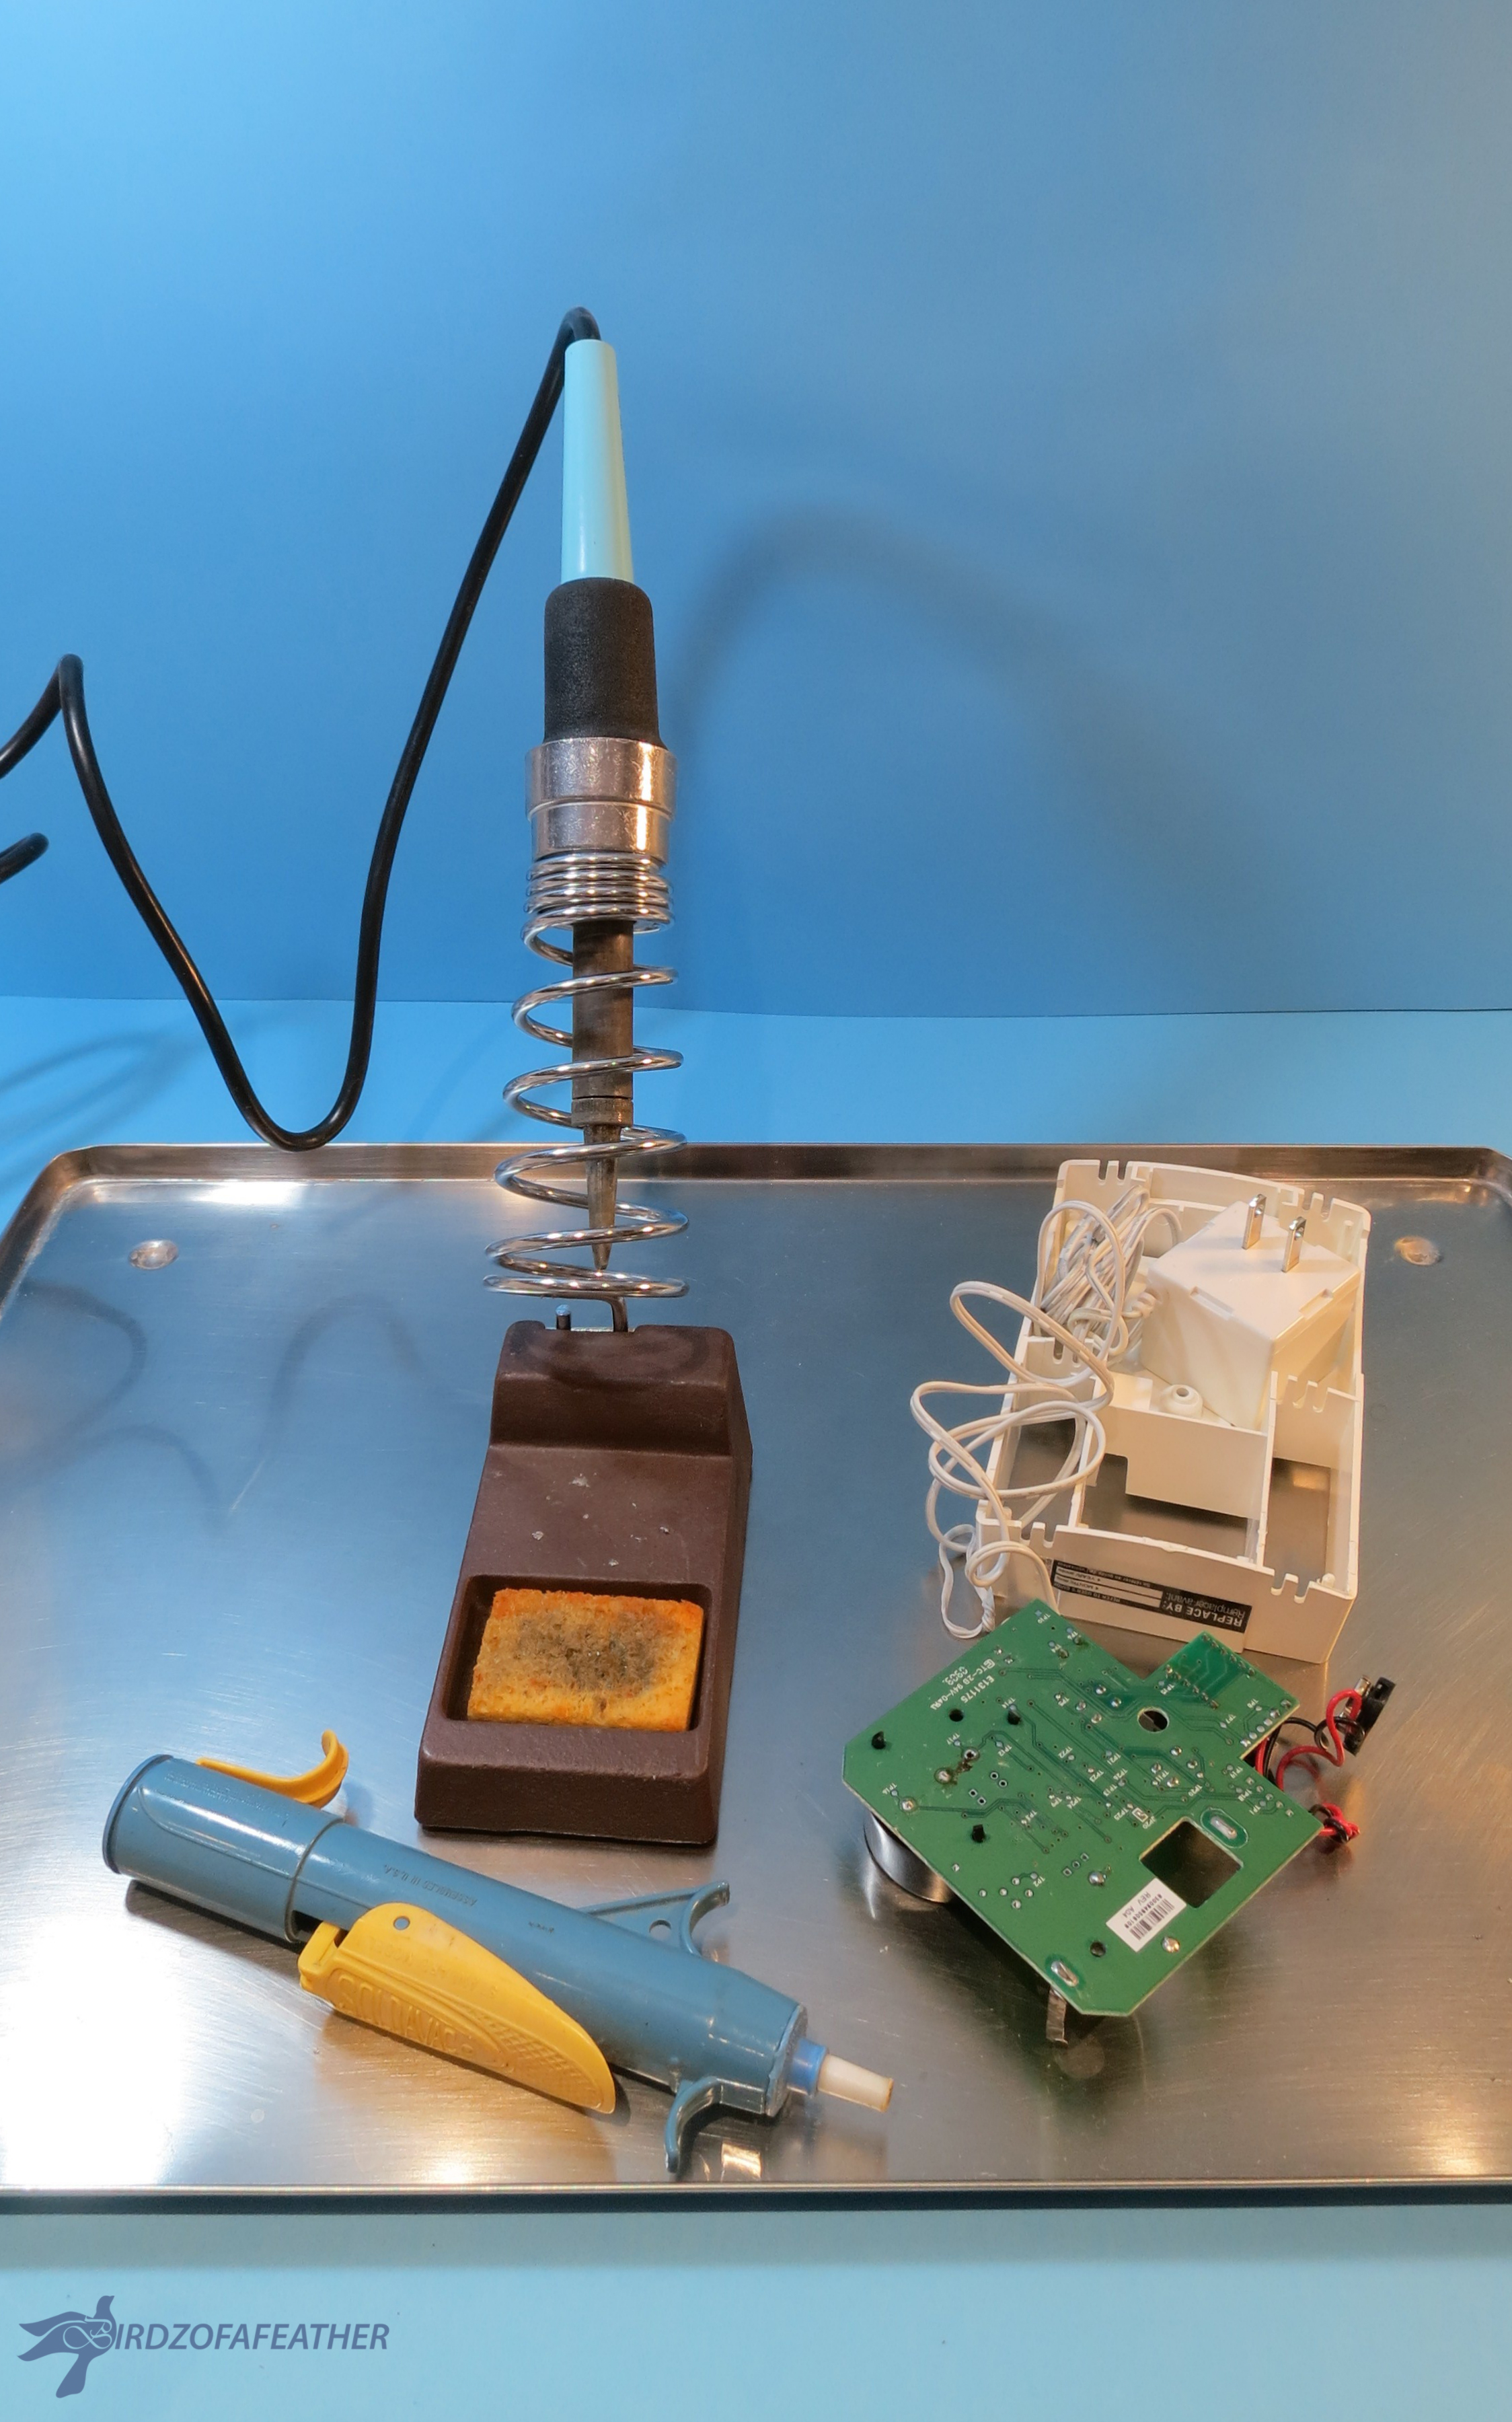 Picture of Prepare Work Surface to Desolder